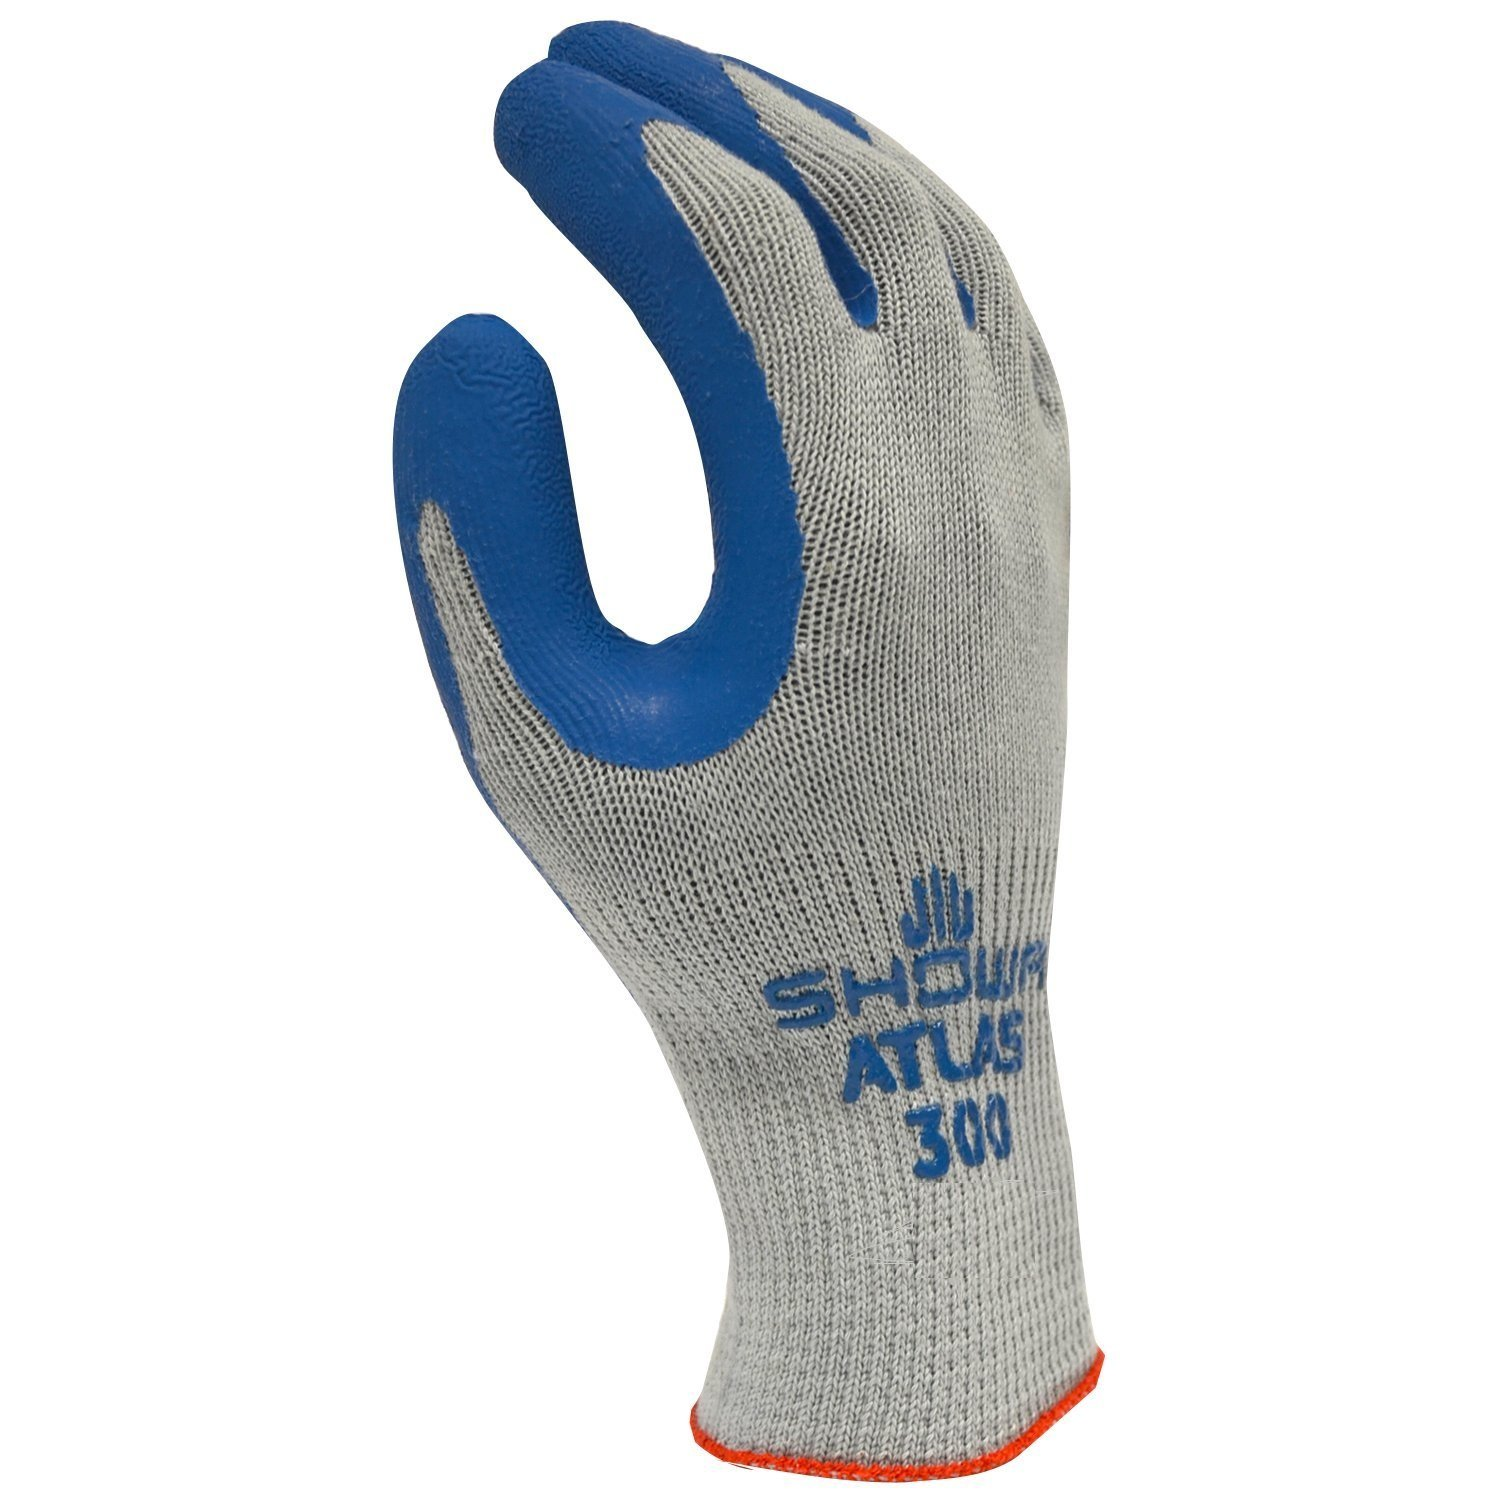 SHOWA Atlas 300S-07 Fit Palm Coating Natural Rubber Glove, Blue, Small (Pack of 12 Pairs): Industrial & Scientific